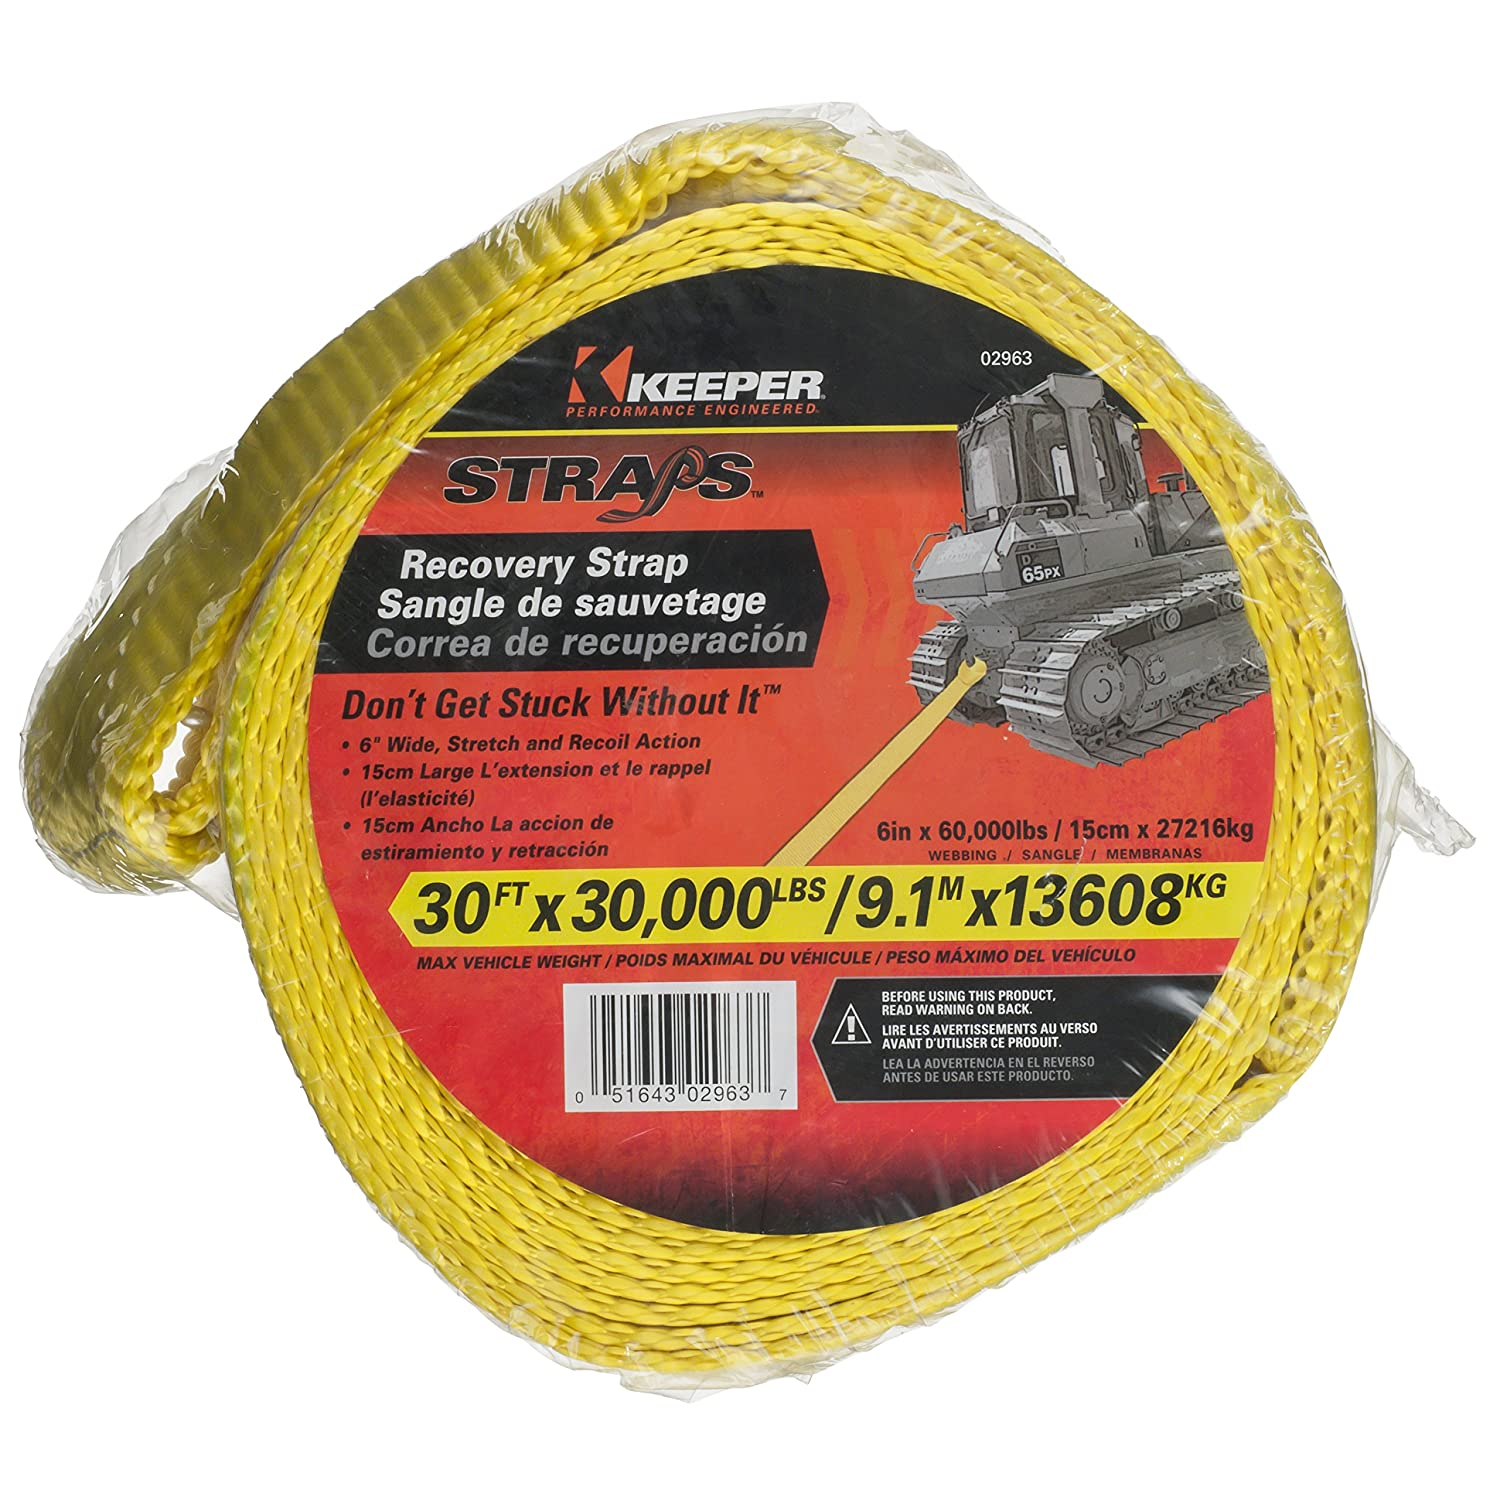 60,000 lb Web Capacity Keeper 02963 6 x 30 Vehicle Recovery Strap with Loops